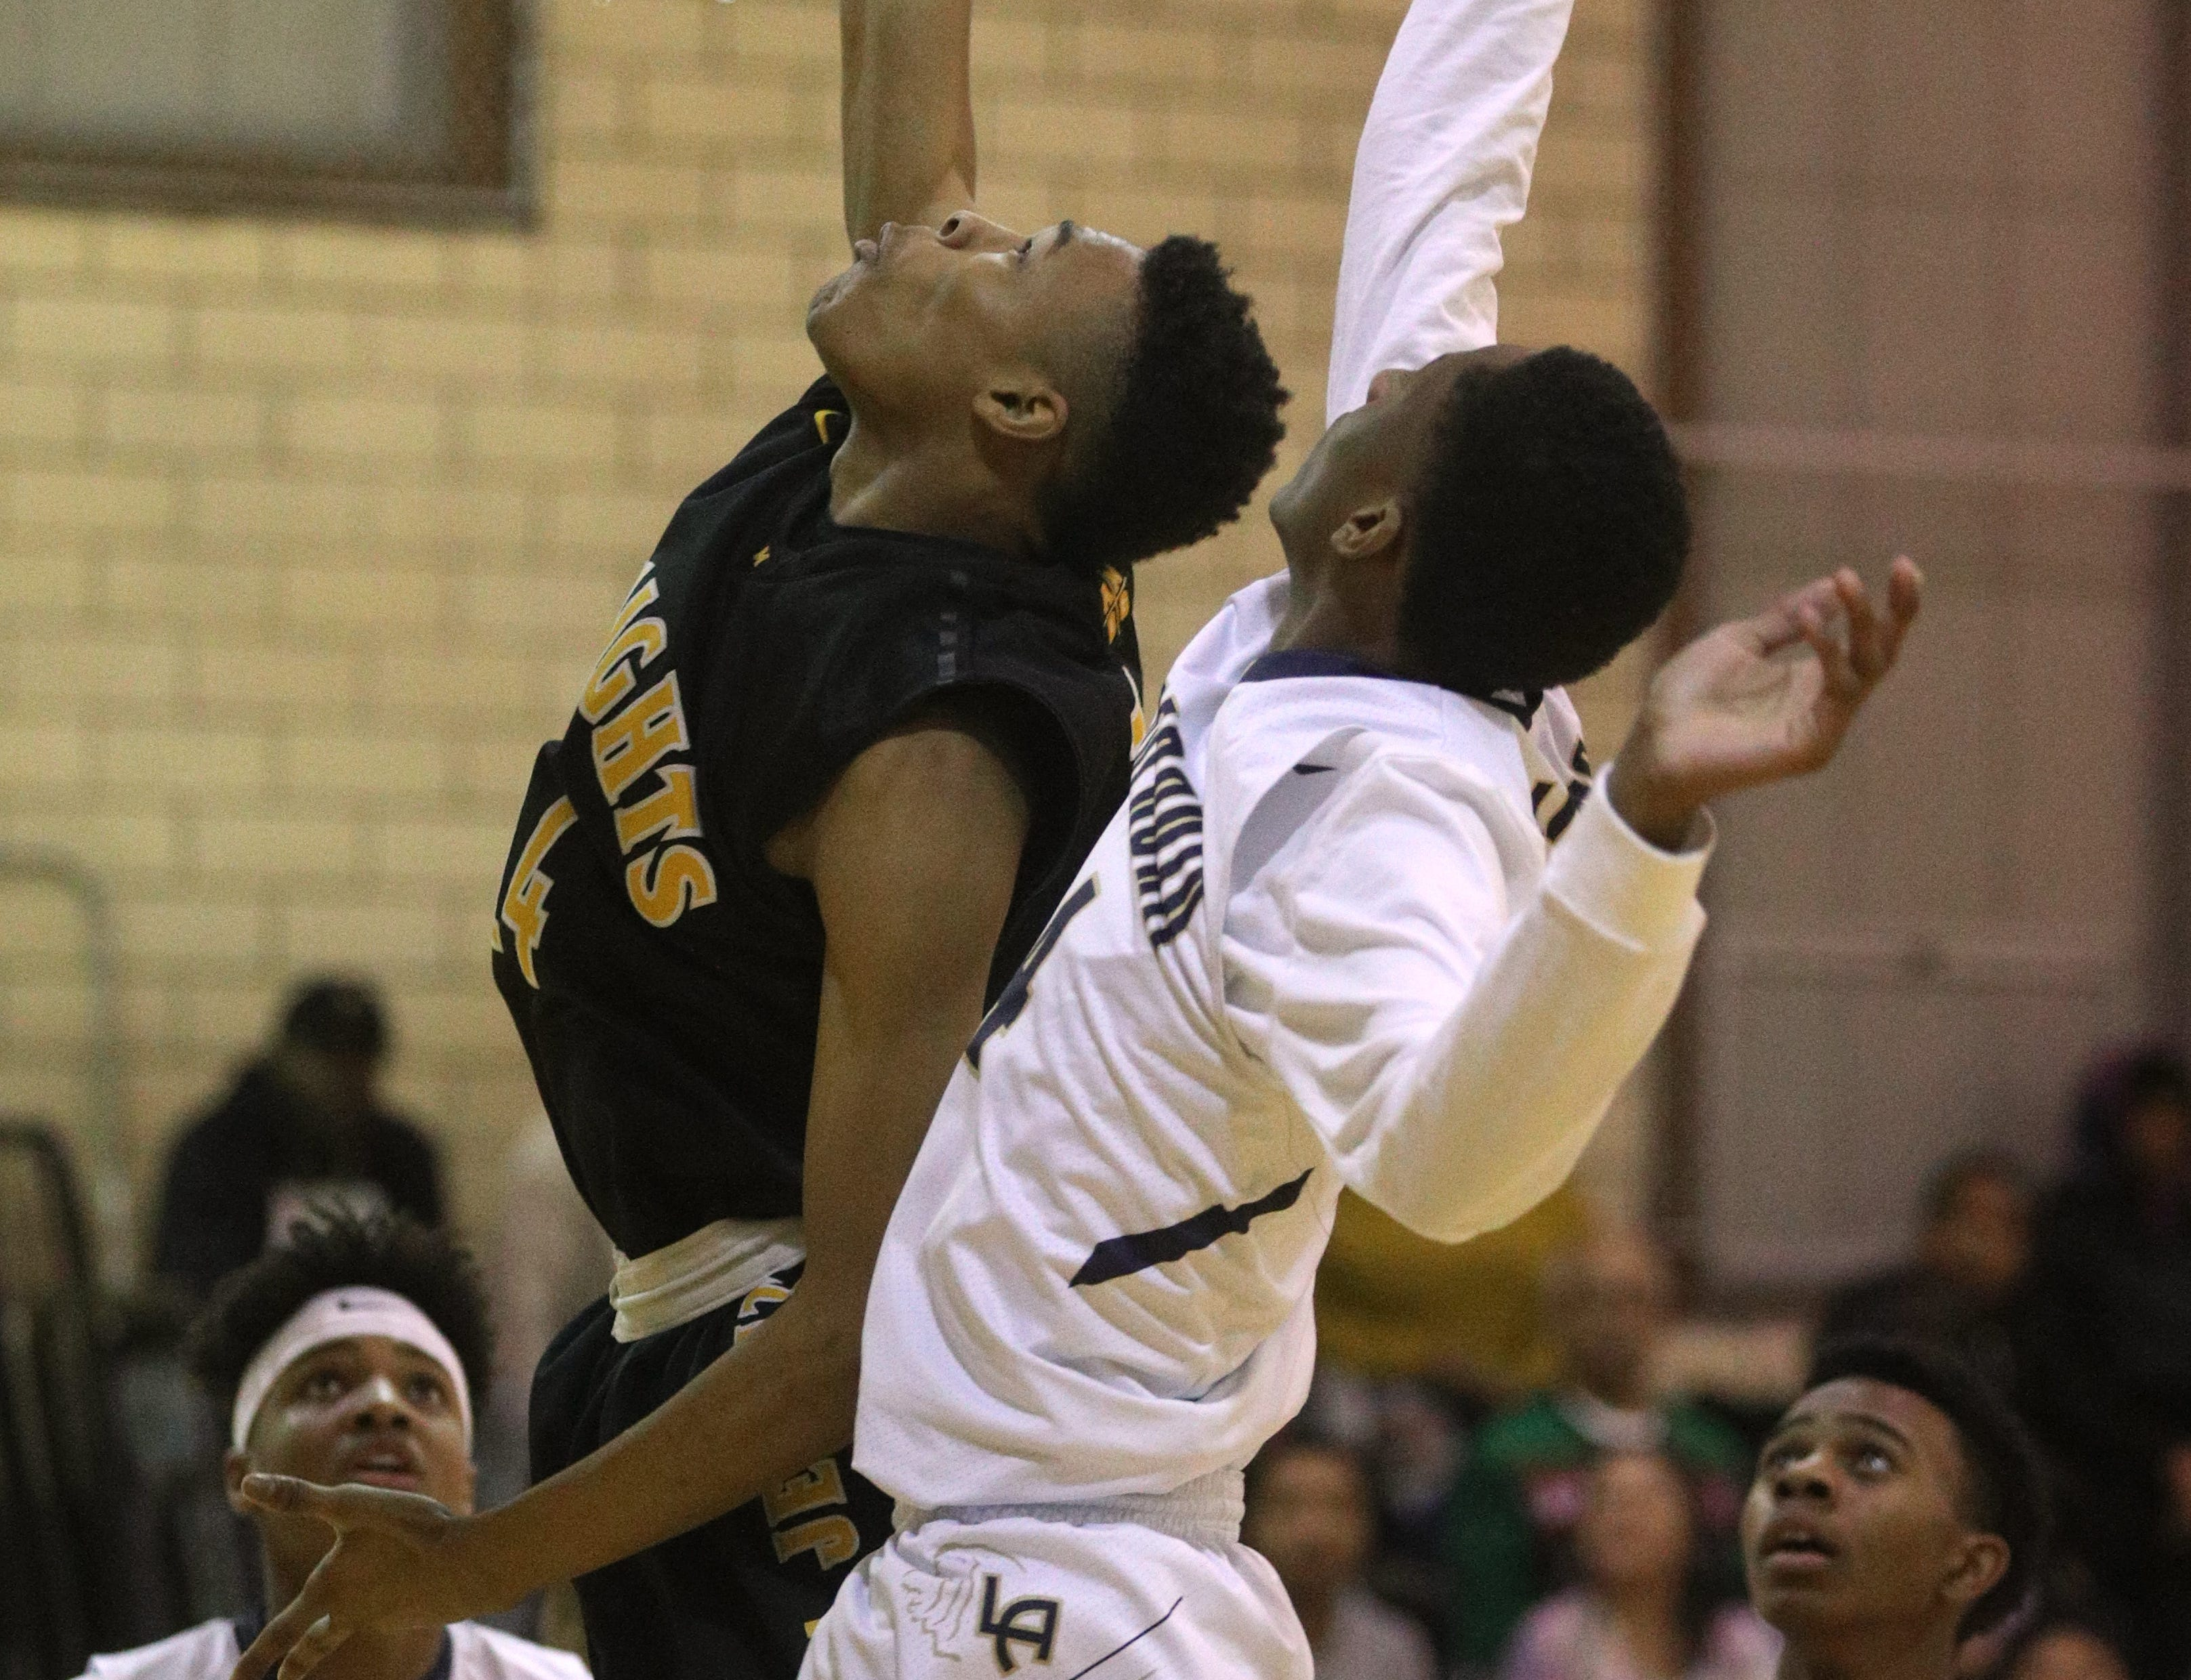 McQuaid's Jermaine Taggart goes to the basket in ahead of Leadership's Kennyh Hardeman.